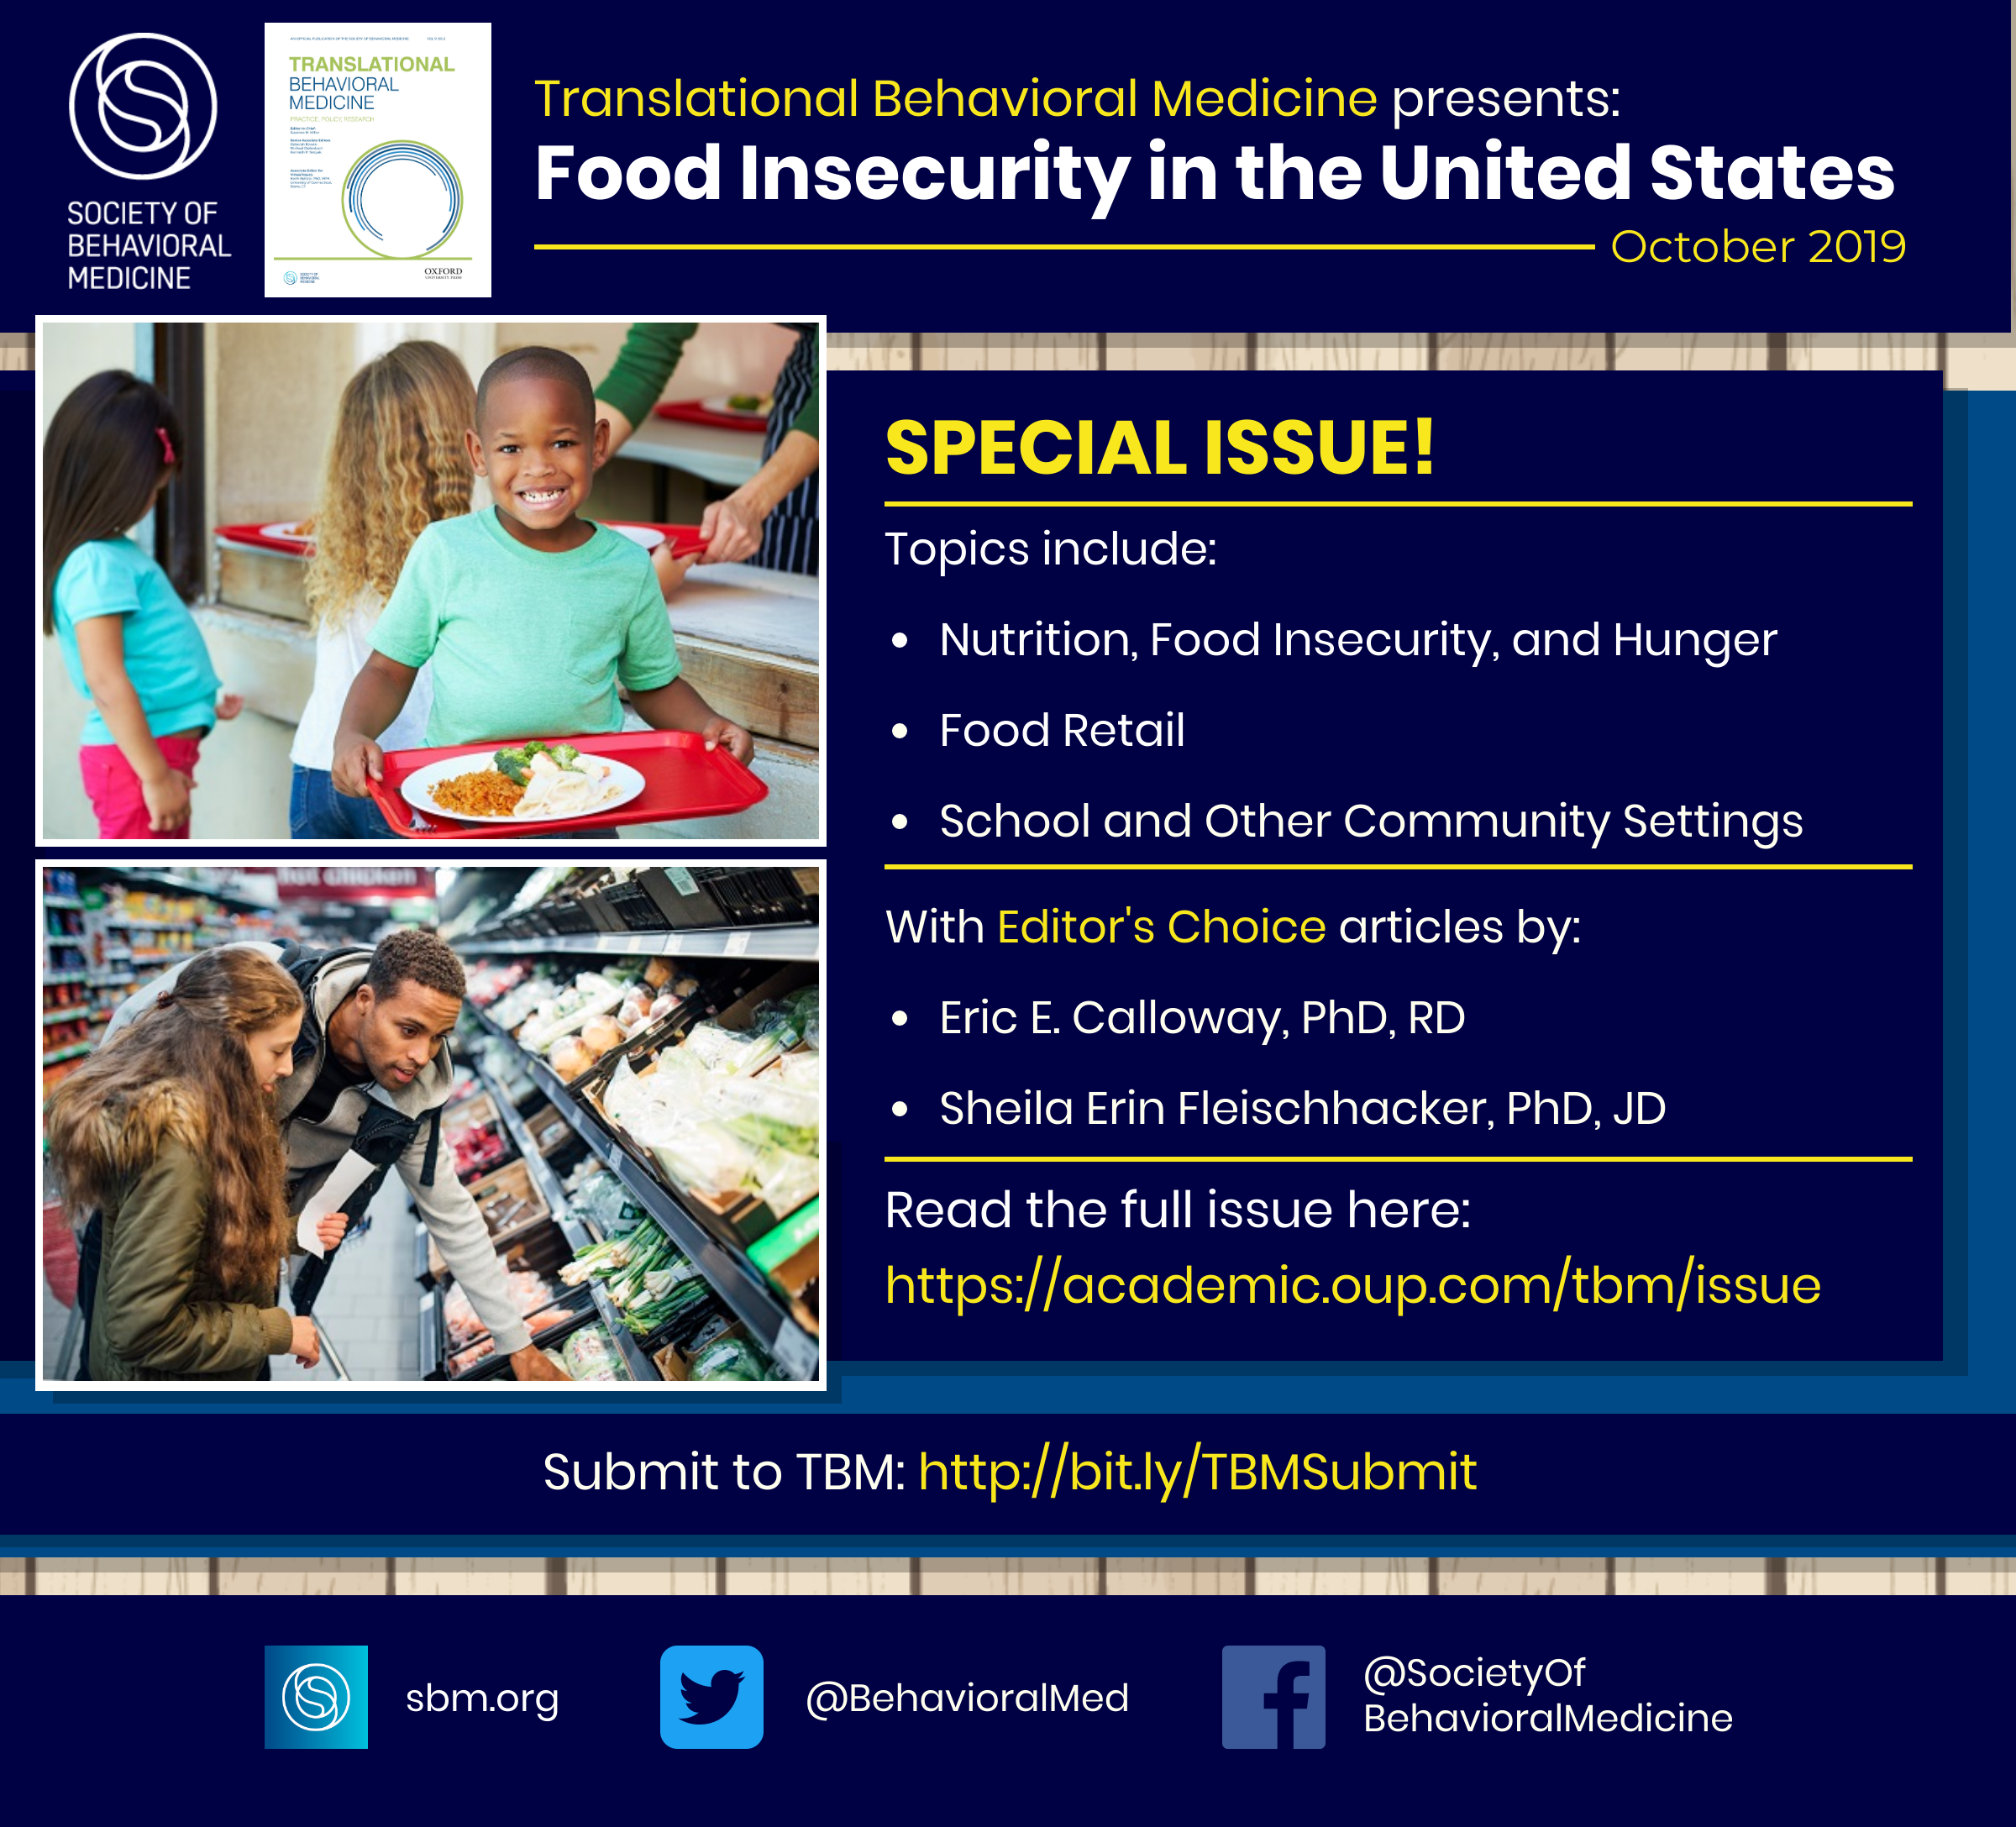 Special Journal Issue on Food Insecurity in the United States